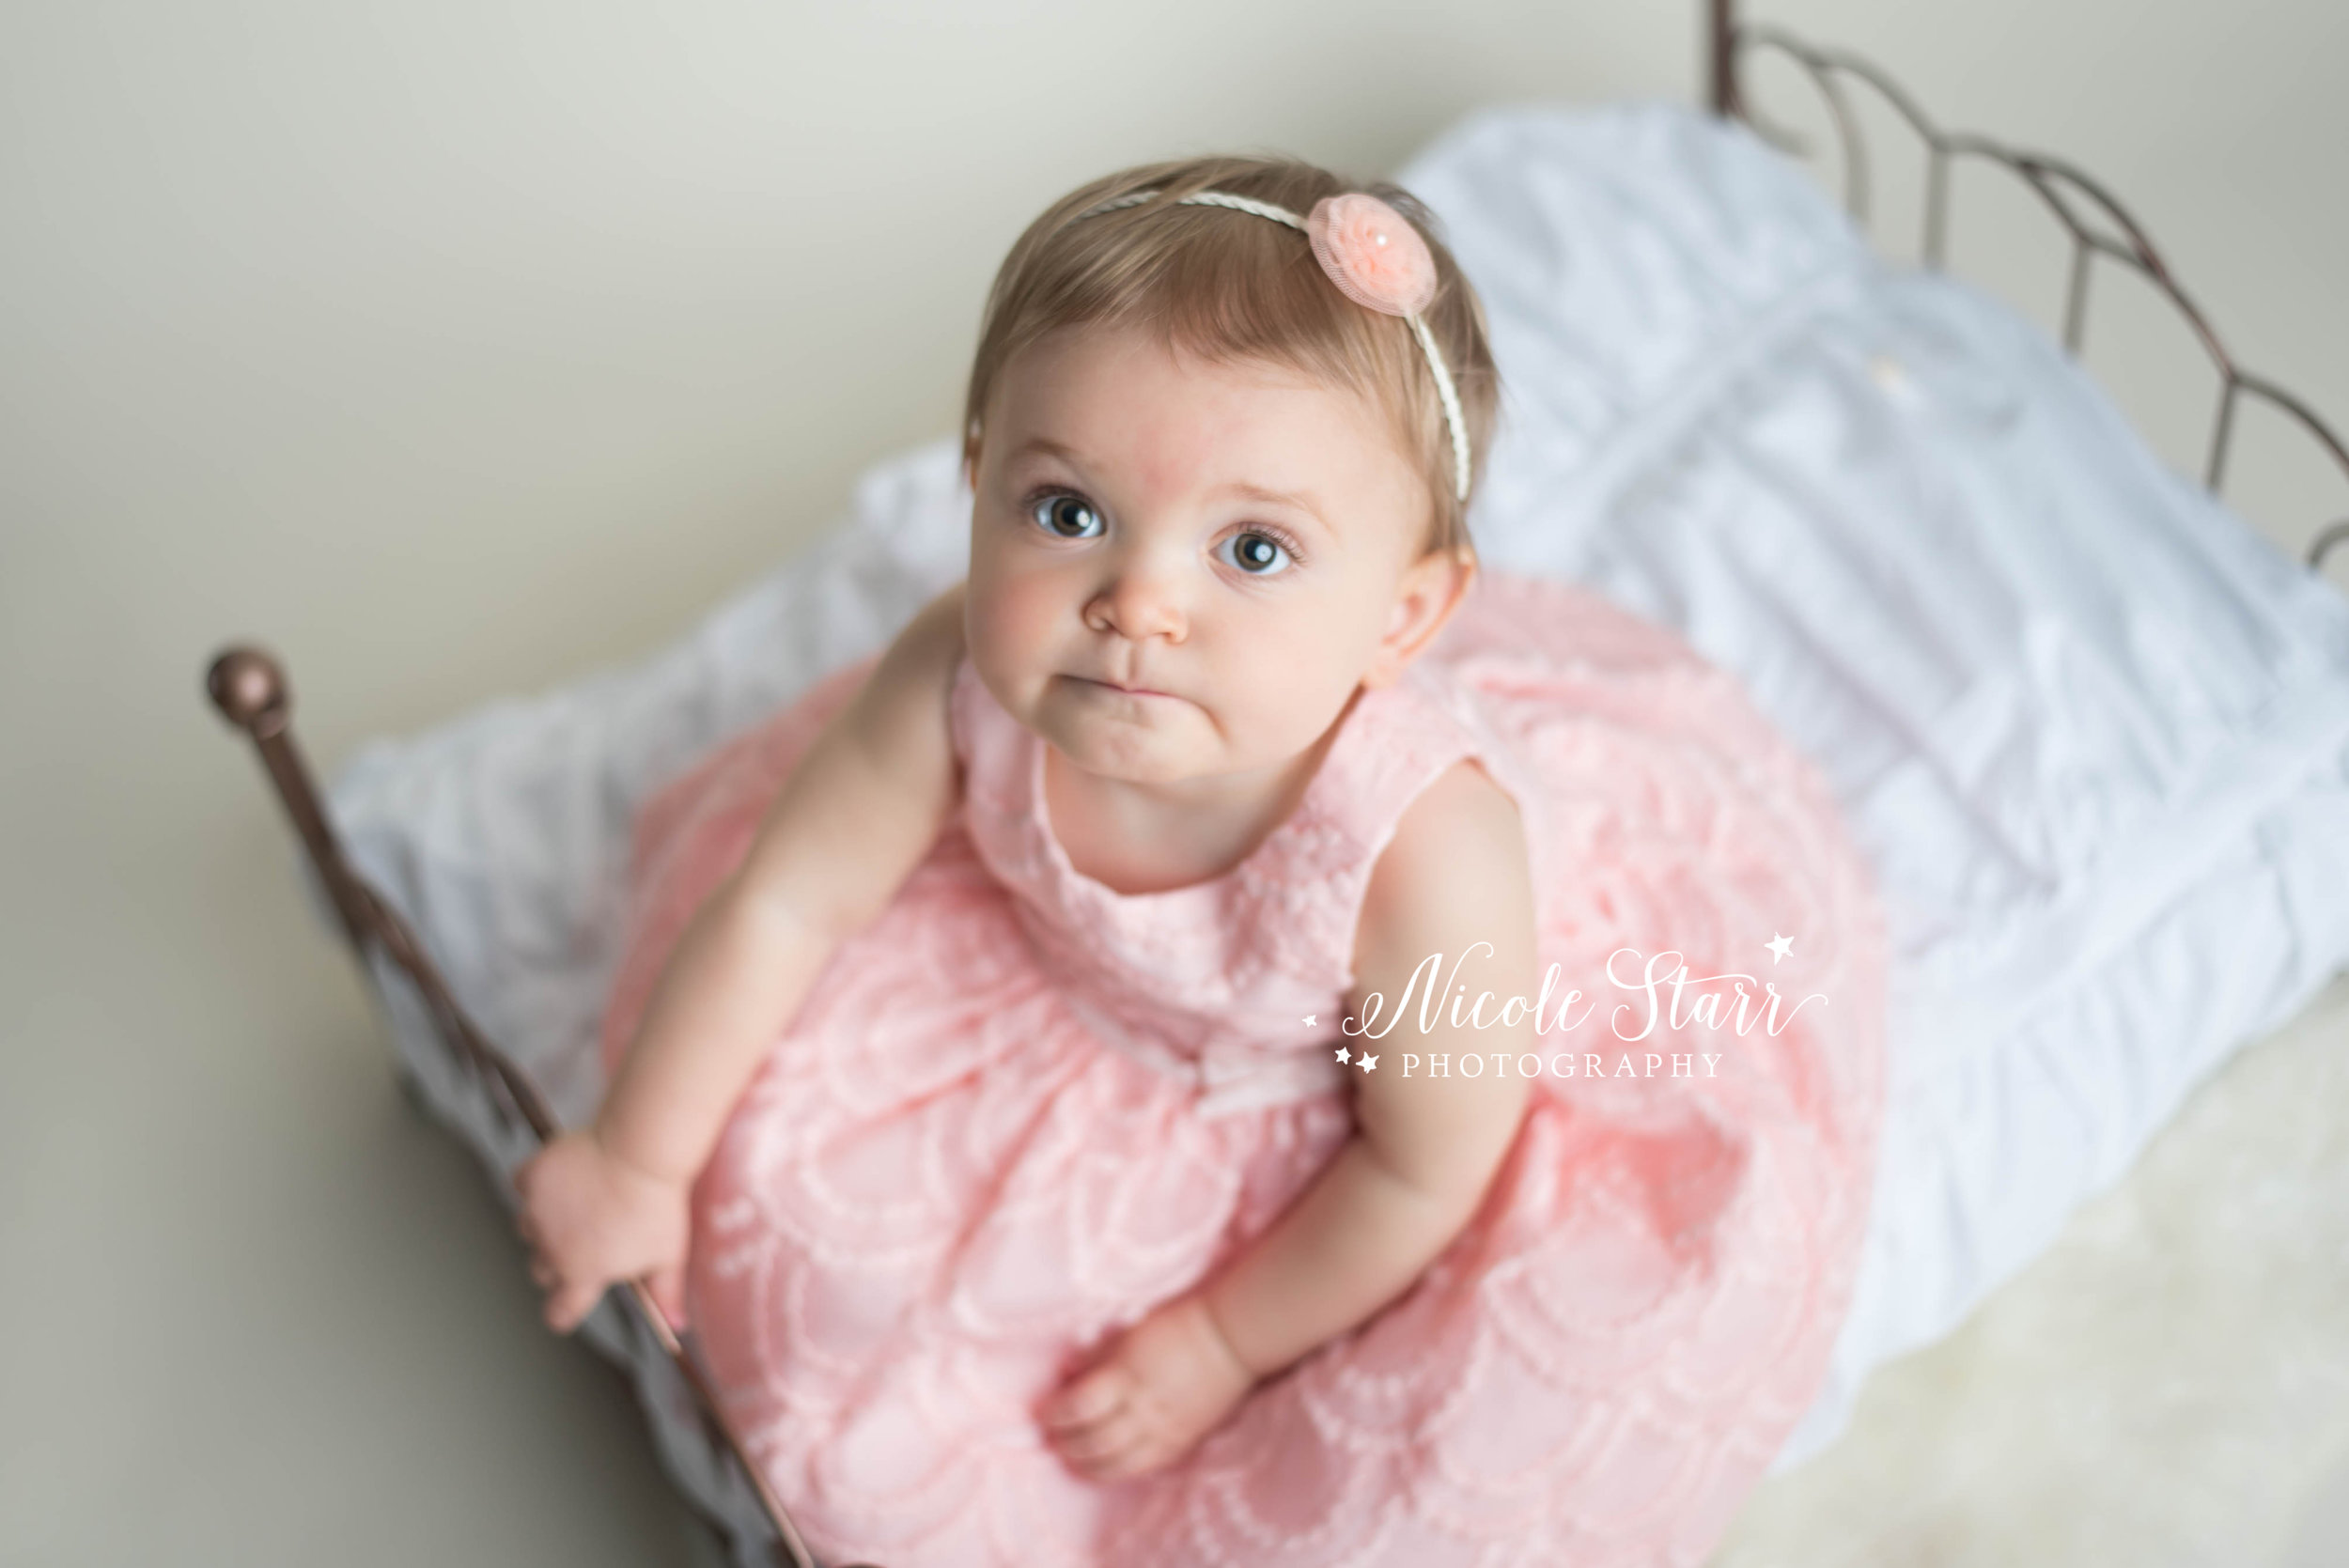 whimsical pink and white flower backdrop for baby's first birthday photo session in saratoga springs